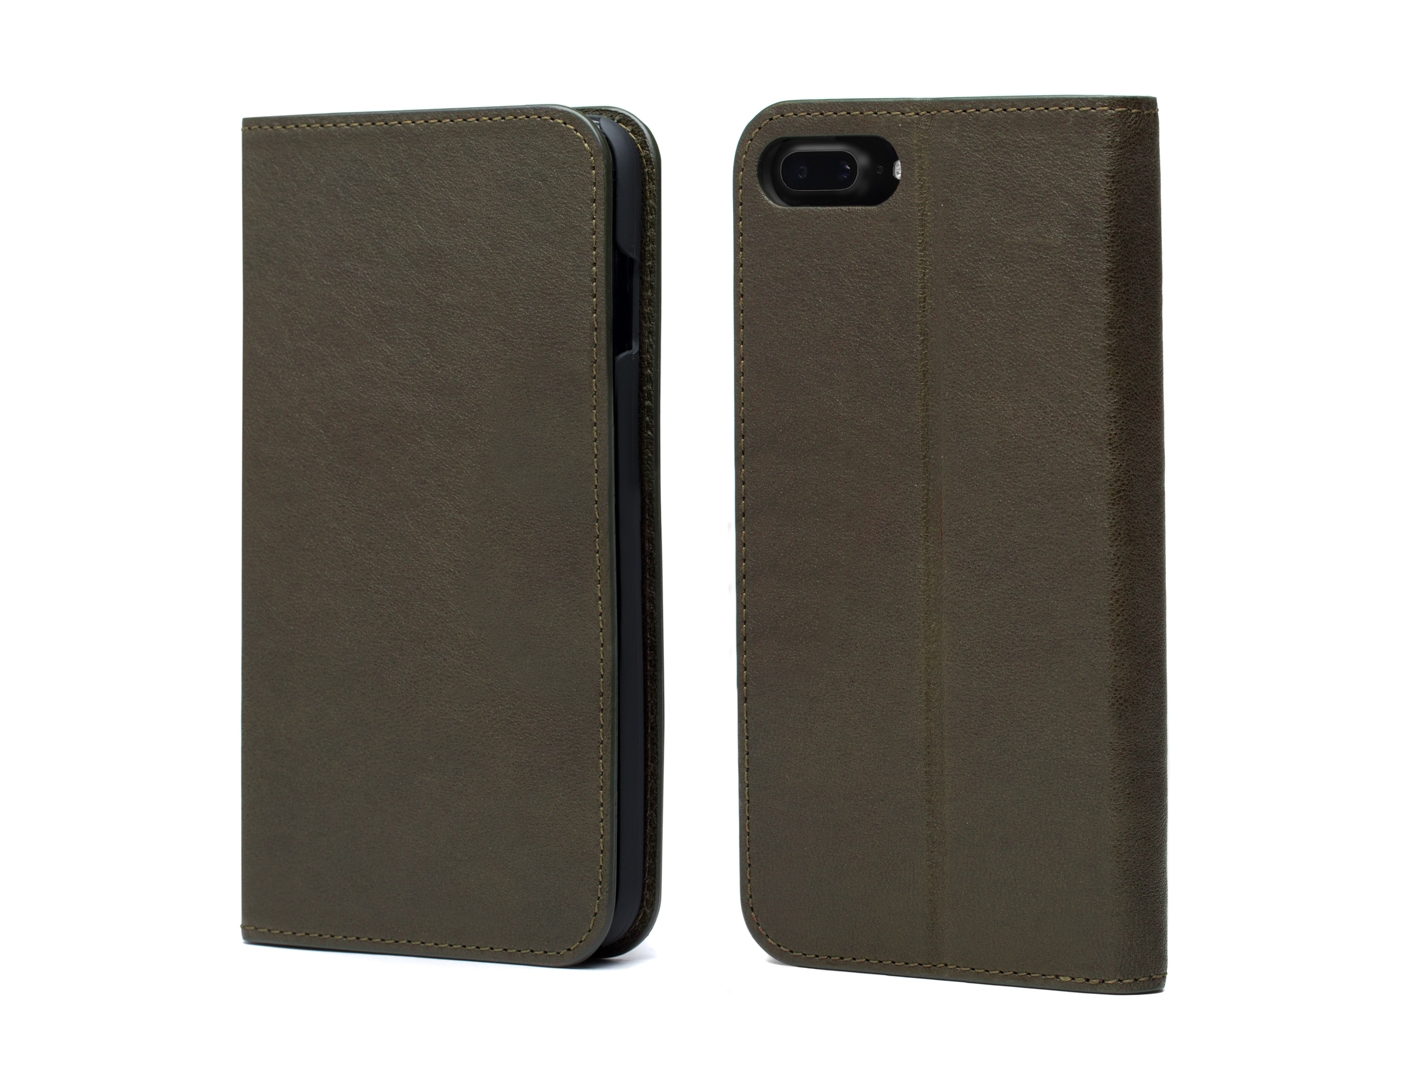 iPhone 8 Flip Case with Cards Inside-152 Dark Green - 152 Dark Green